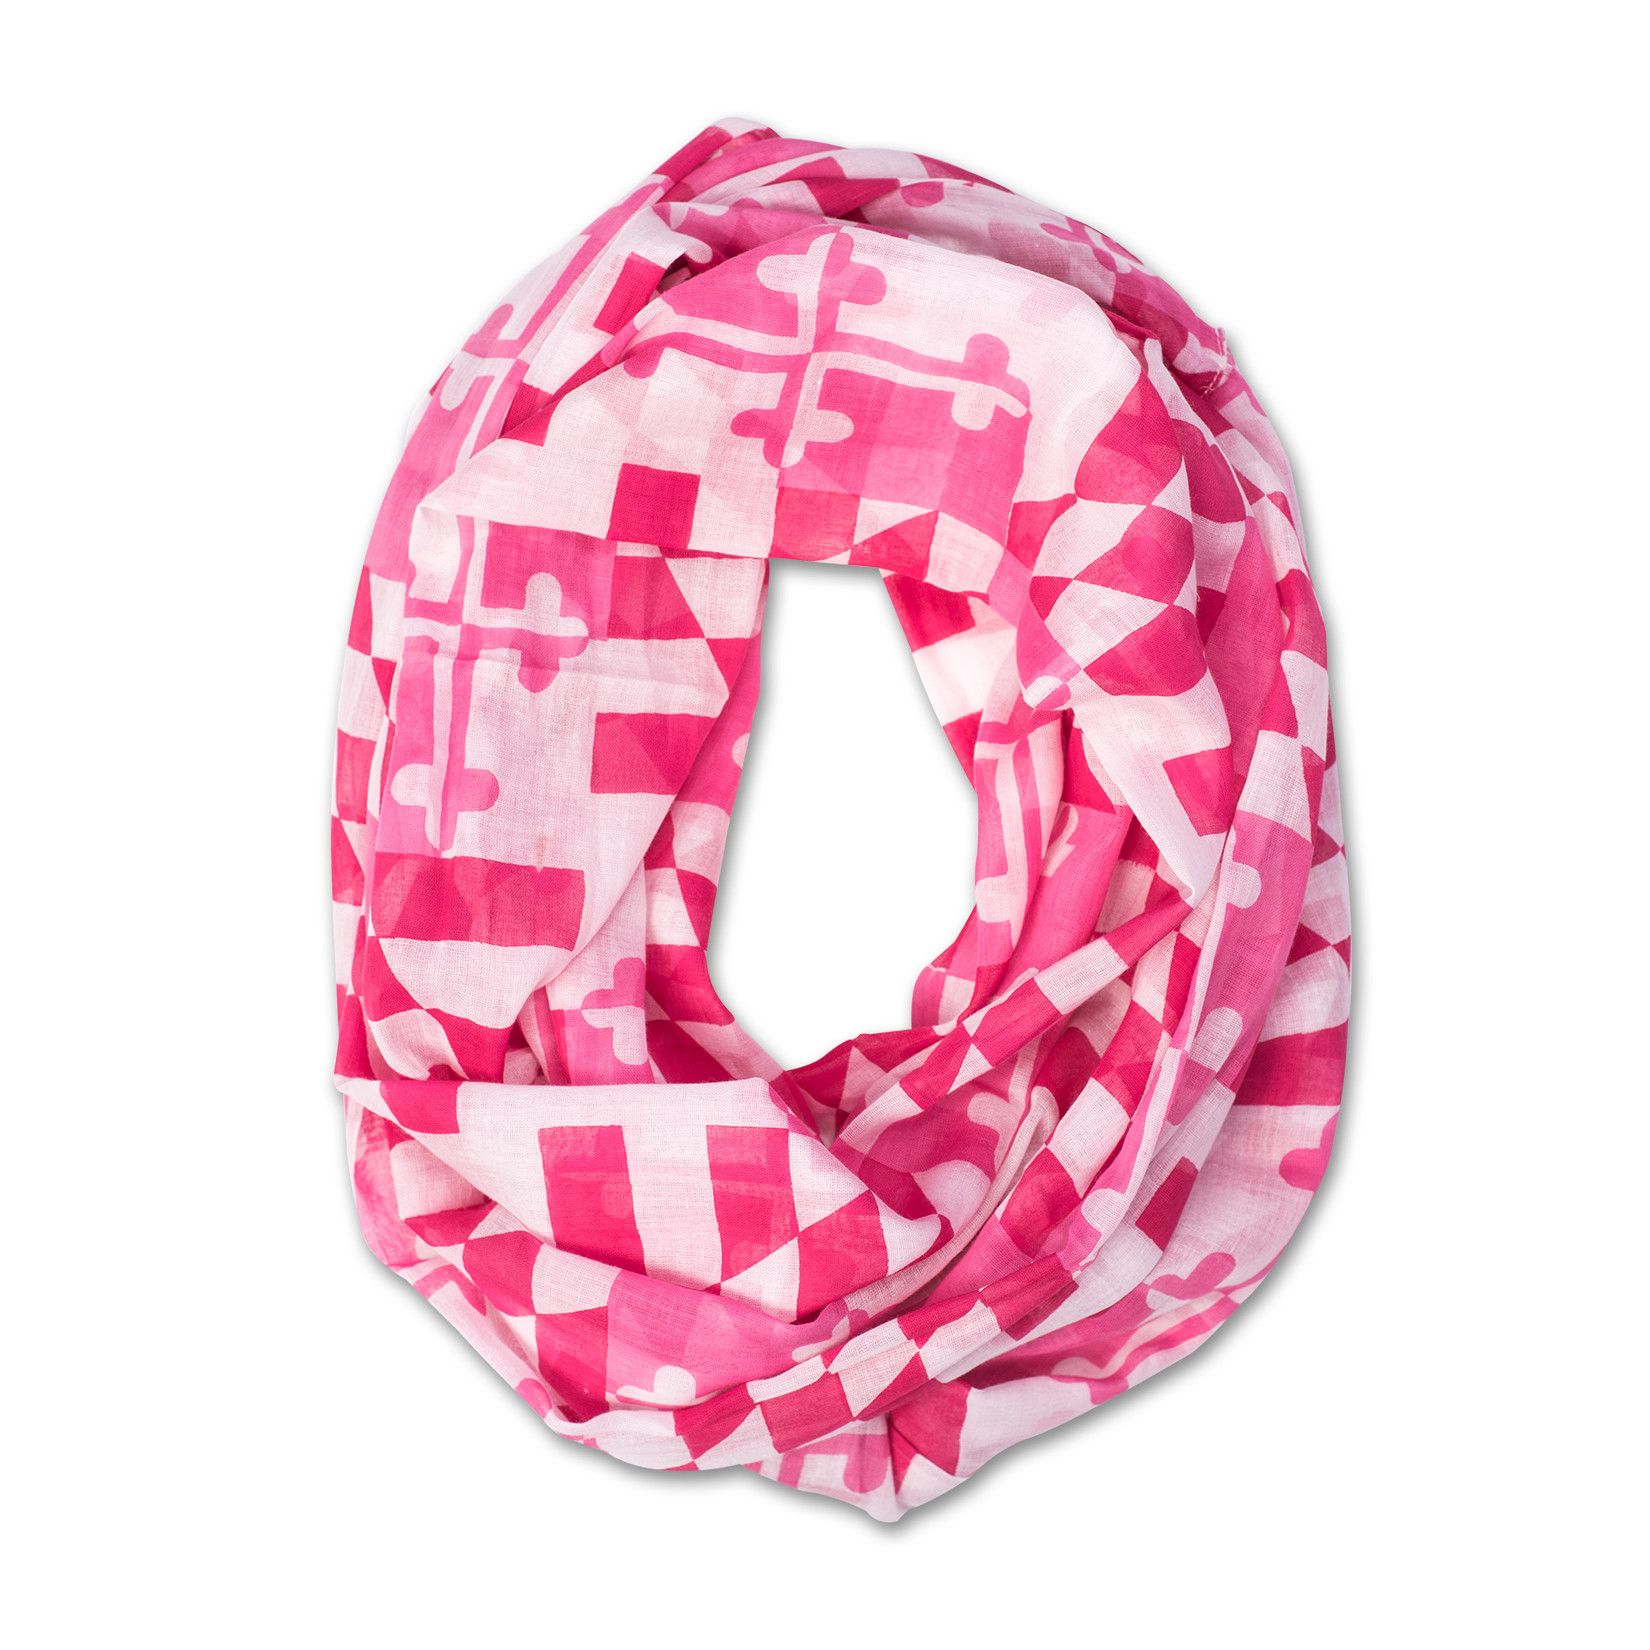 picture p spectrum s crinkled loop soft of coral scarf airy womens pink lightweight infinity